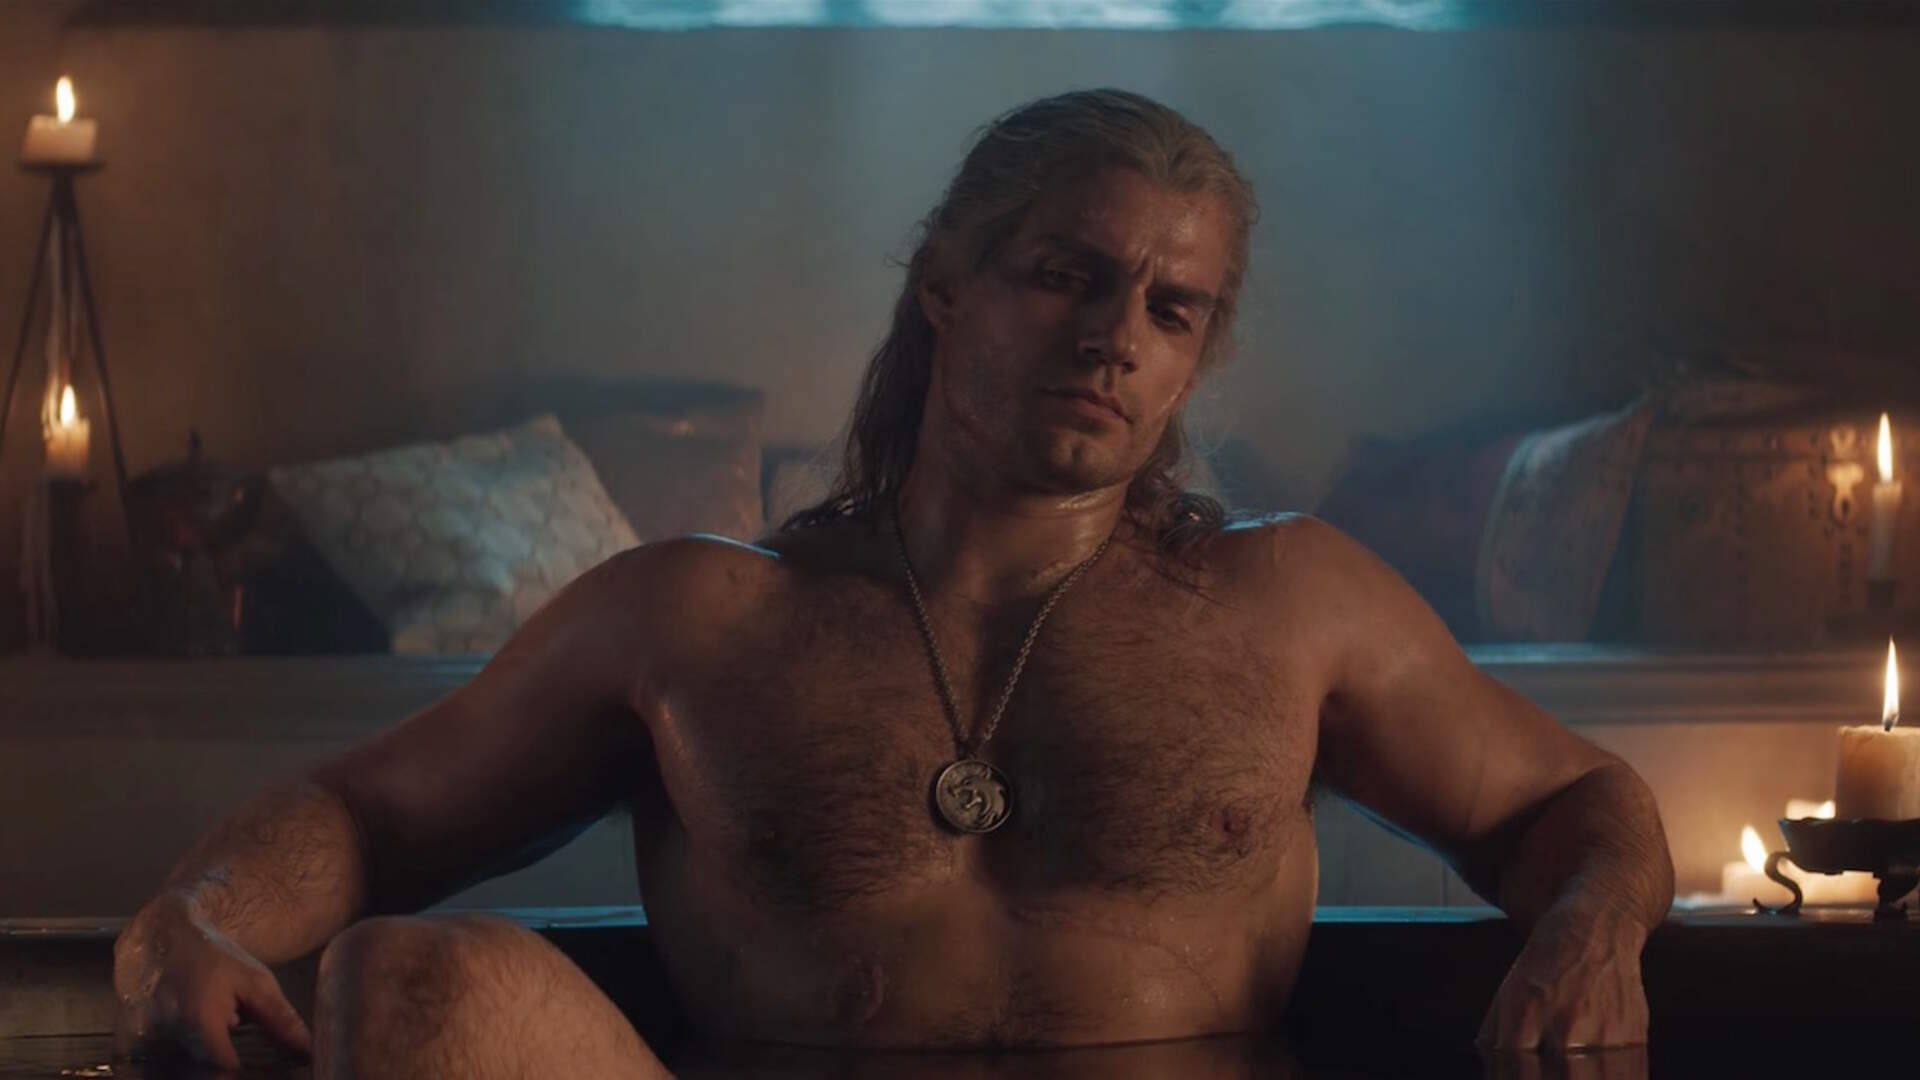 Netflix's New The Witcher Trailer Gives Us What We Really Want: Geralt in a Bathtub